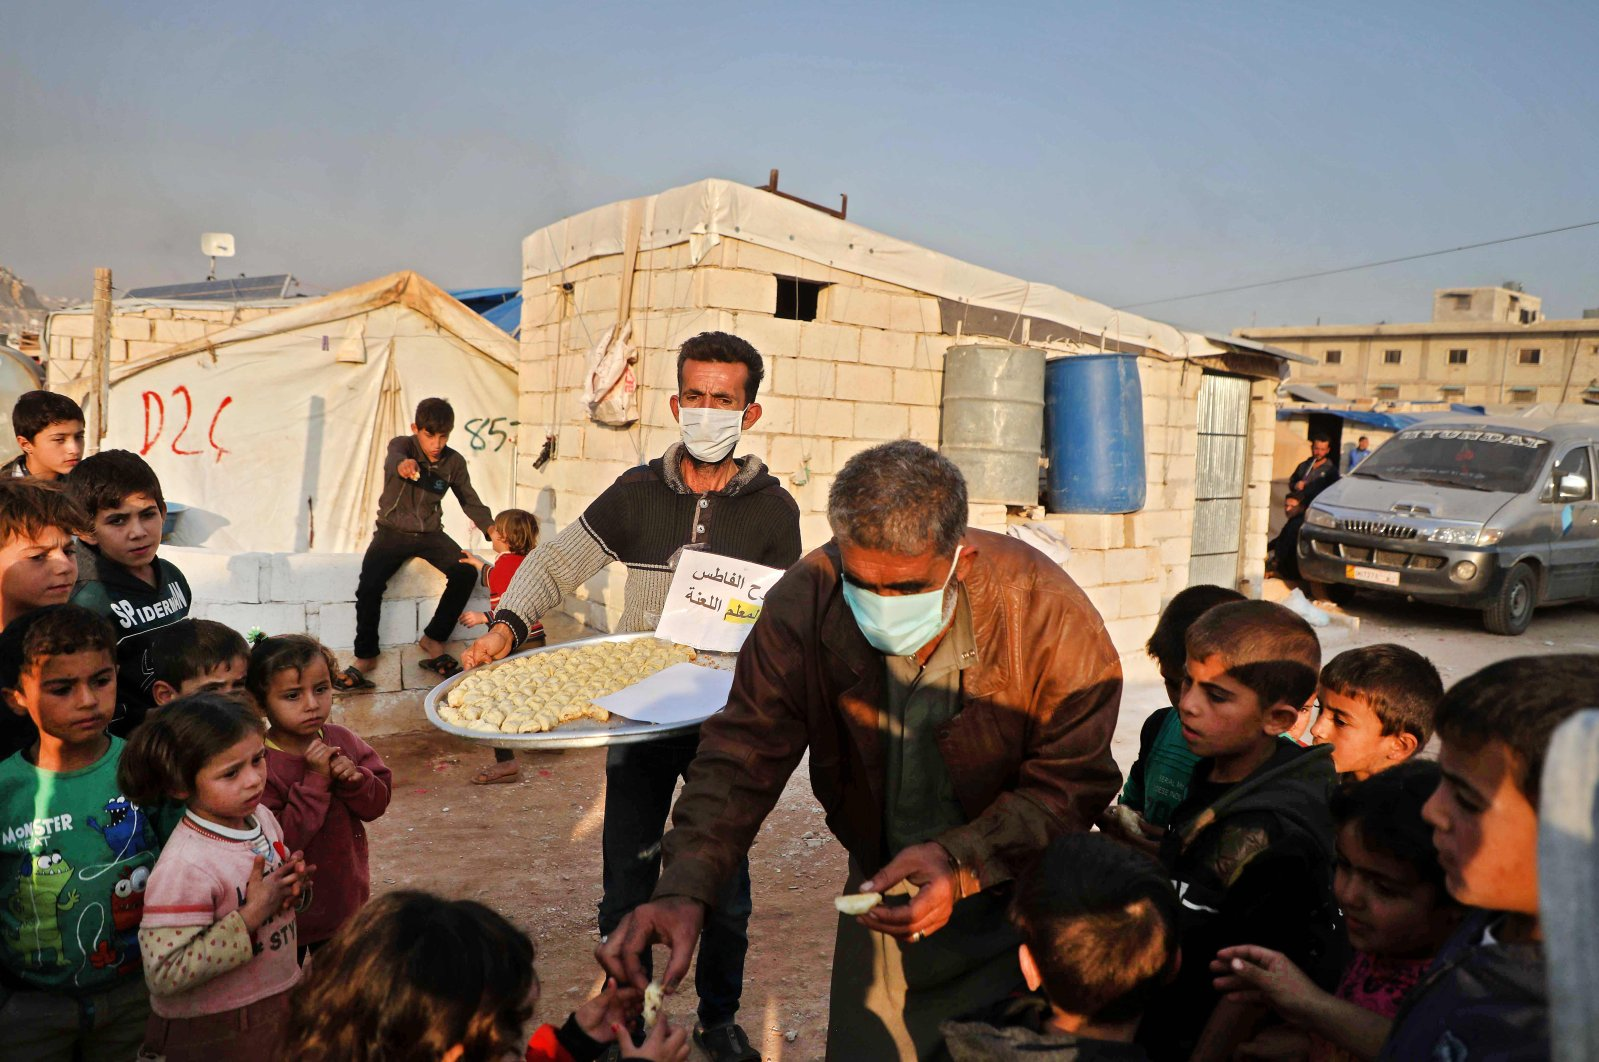 Men distribute traditional desserts to children at a camp for displaced Syrians in Kafr Dariyan, in the north of Syria's northwestern Idlib province, Nov. 16, 2020. (AFP Photo)